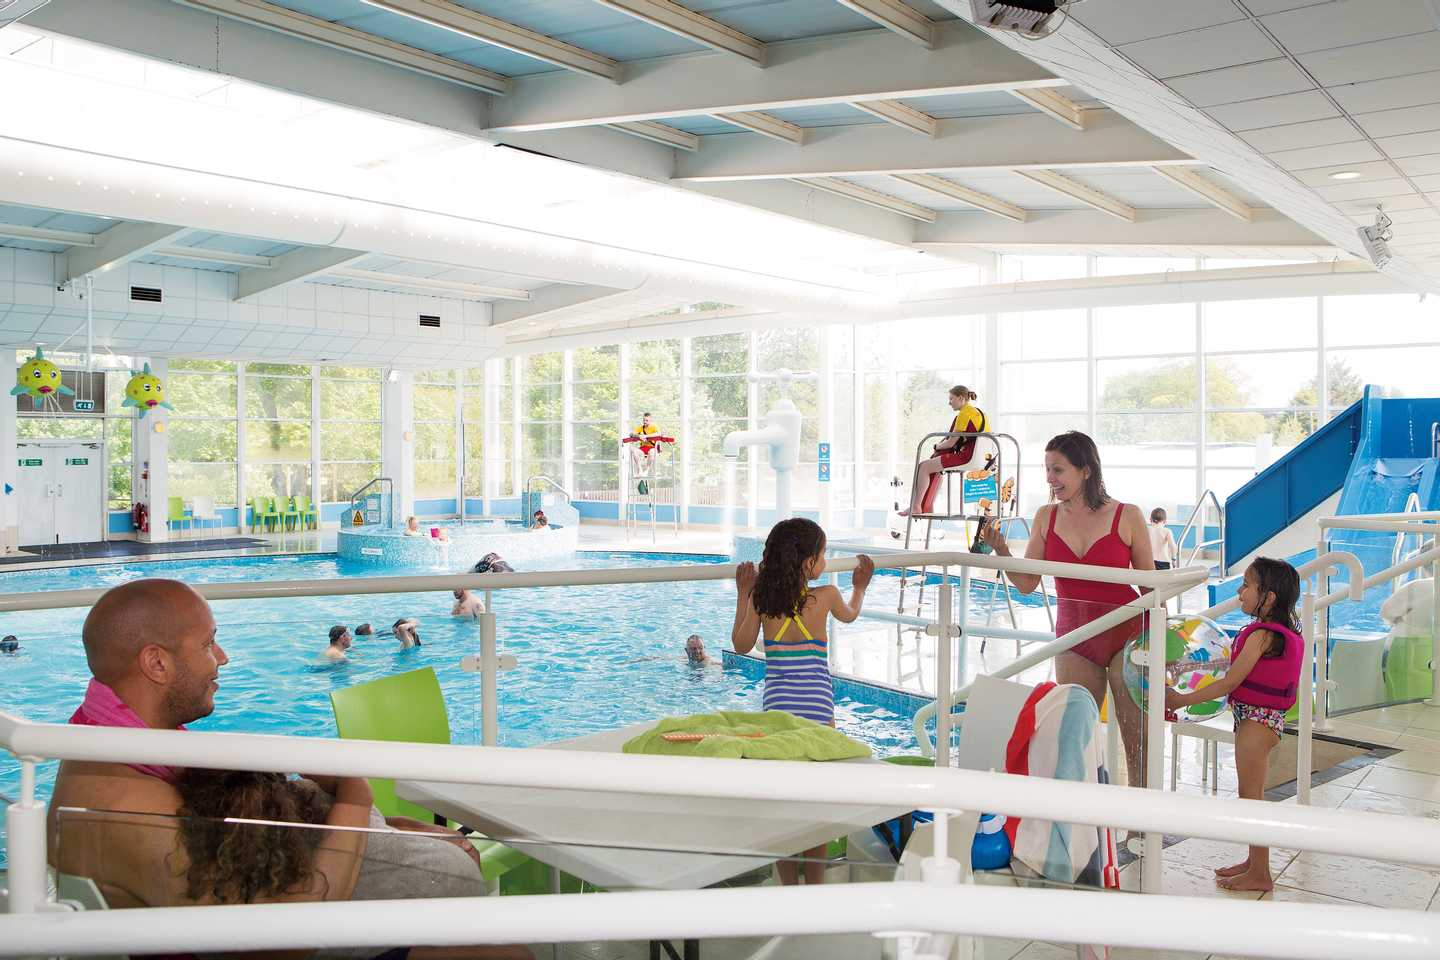 Guests enjoying the heated indoor pool